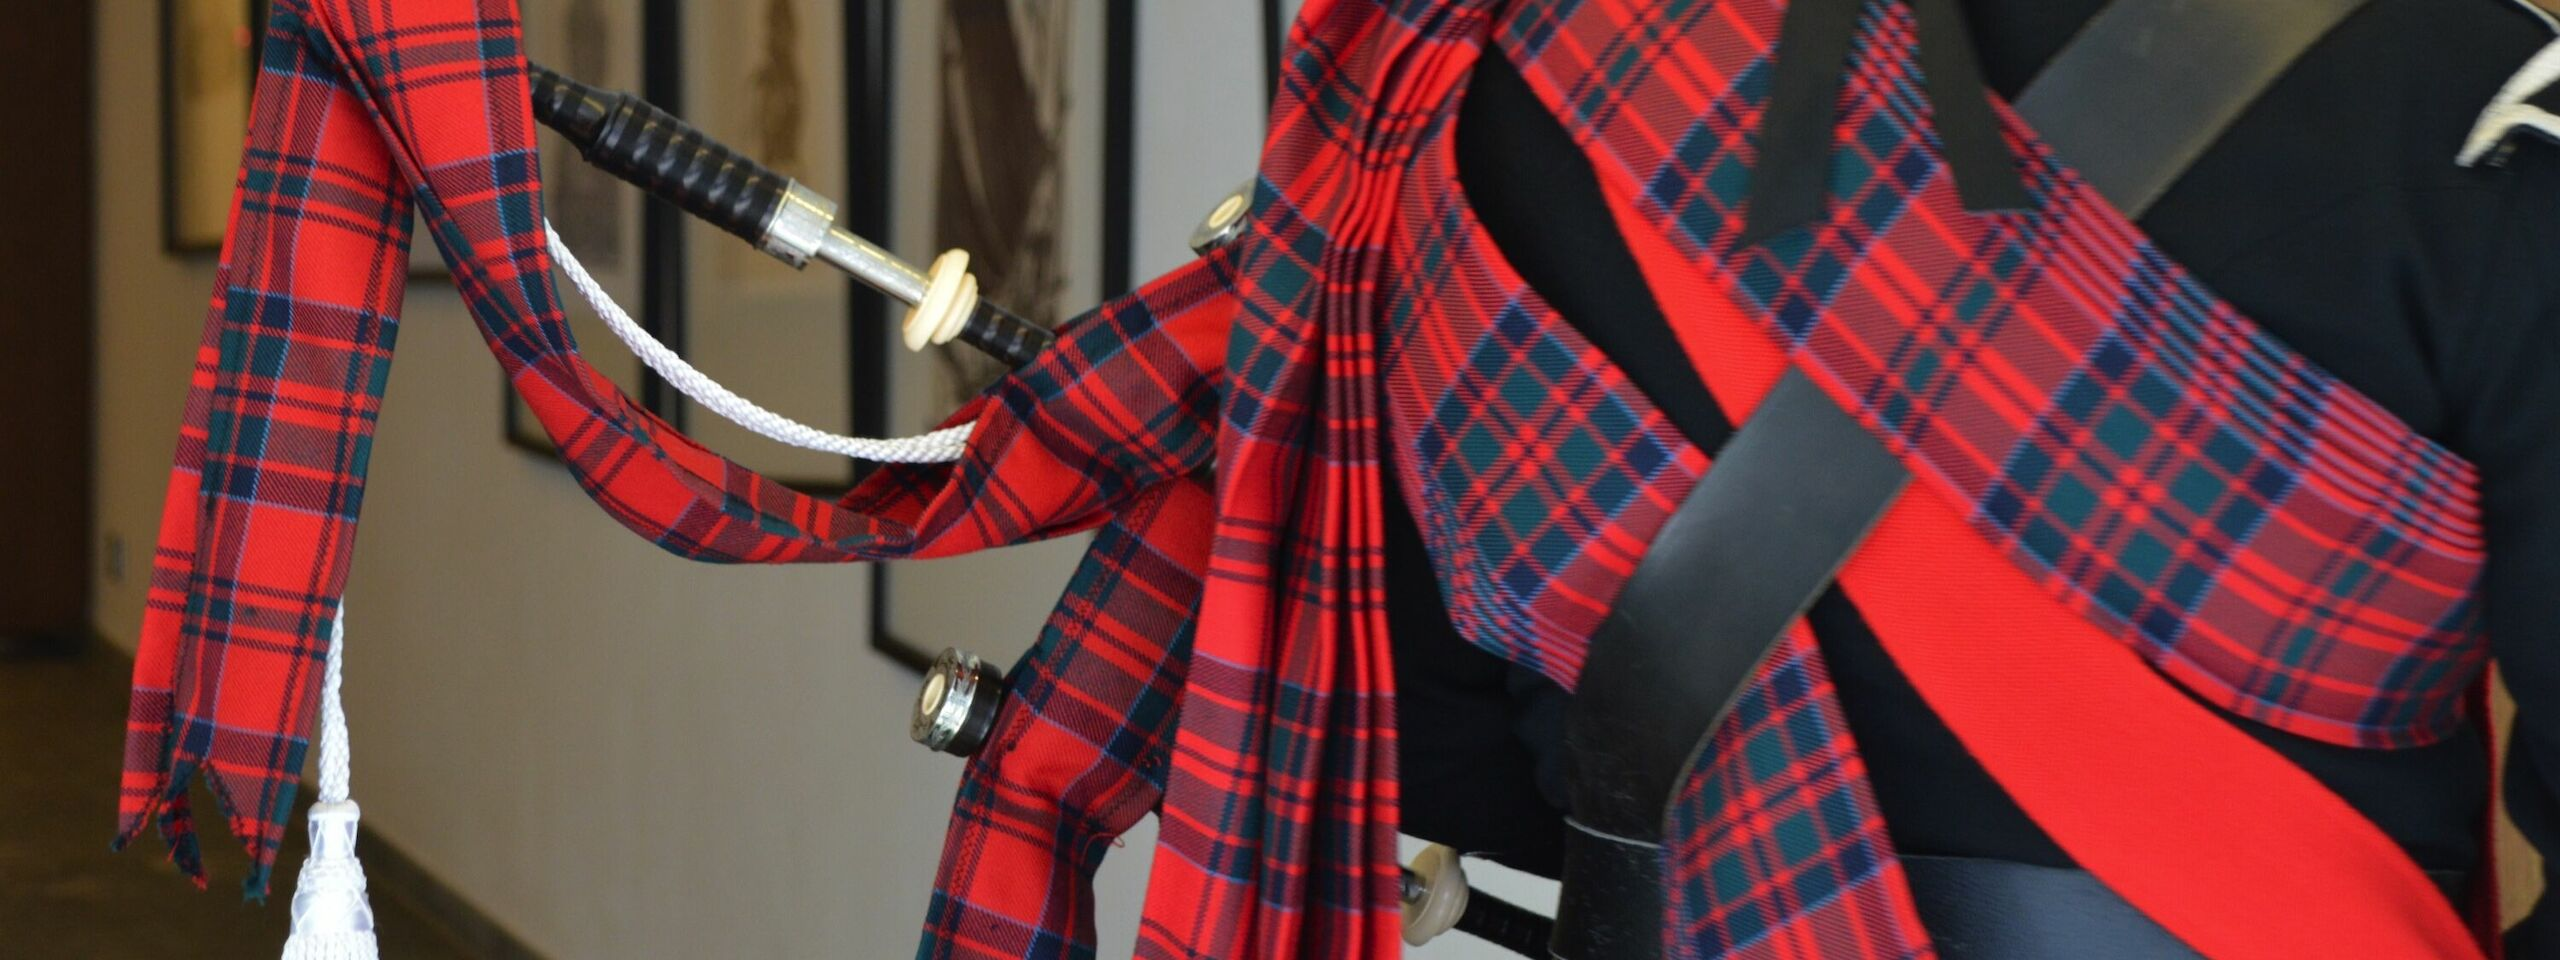 Traube Tonbach Offer Promotion Scottish Days Bagpipe